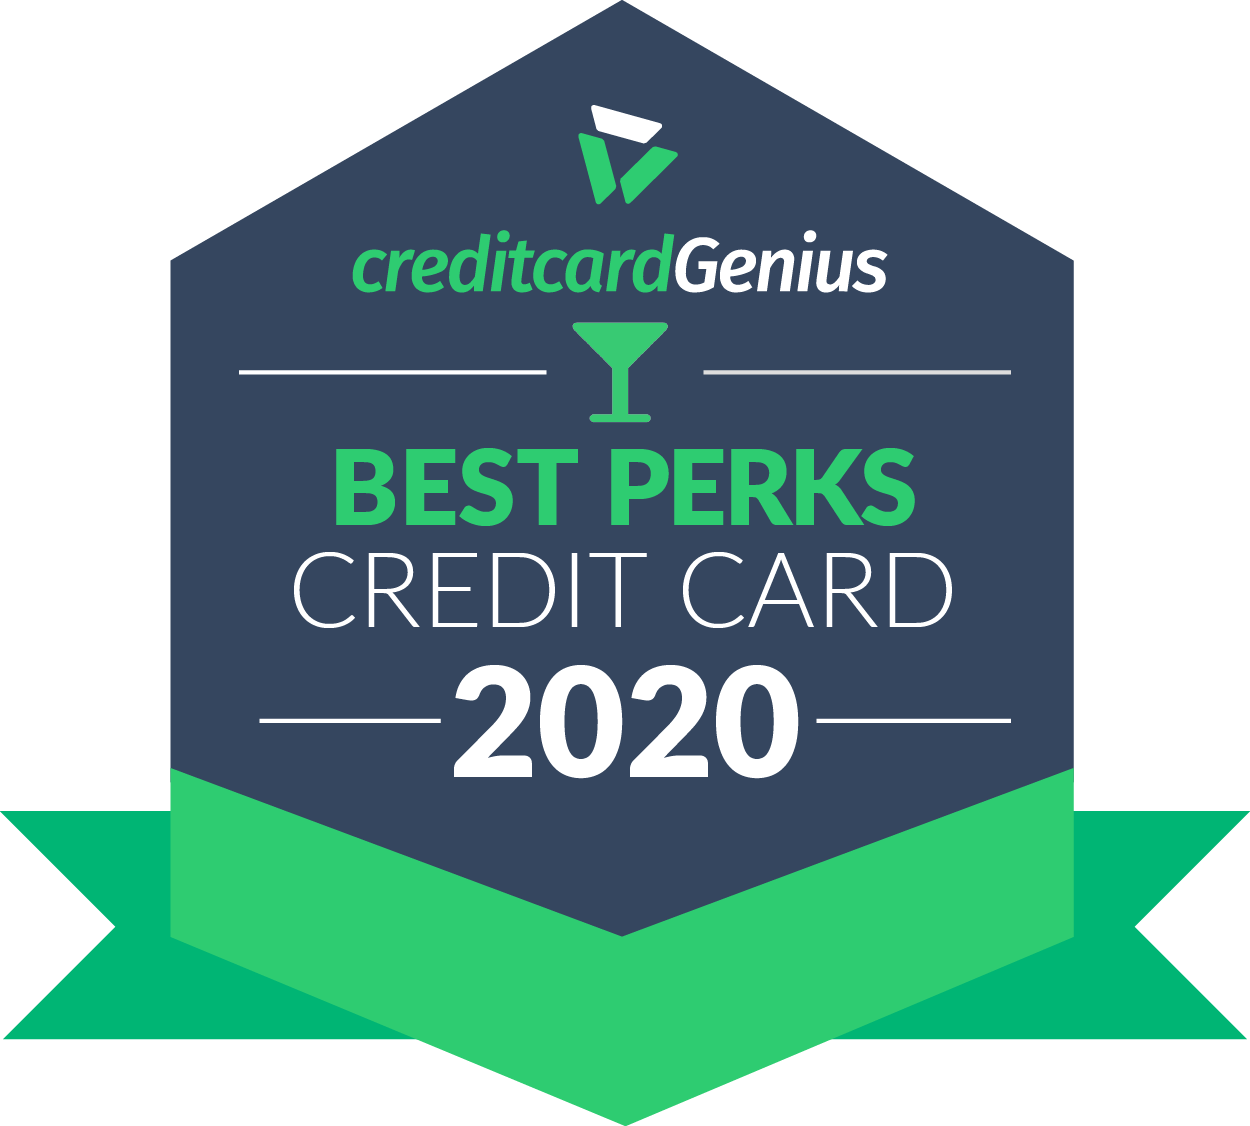 Best perks credit card in Canada for 2020 award seal